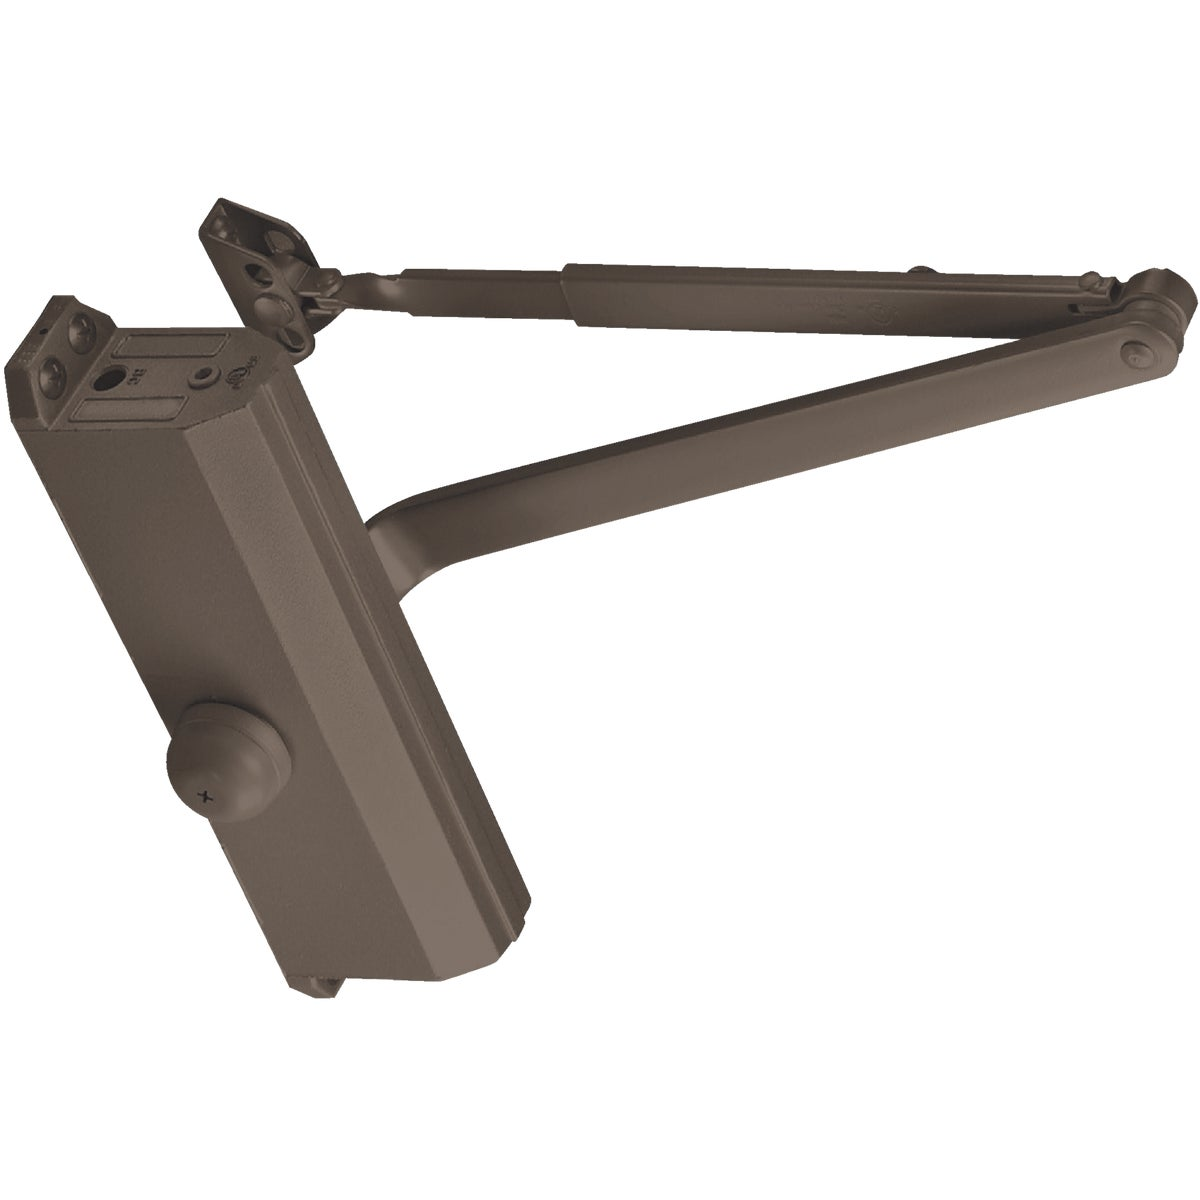 3-6 BRZ USA DOOR CLOSER - V51X690 by Yale Security Group